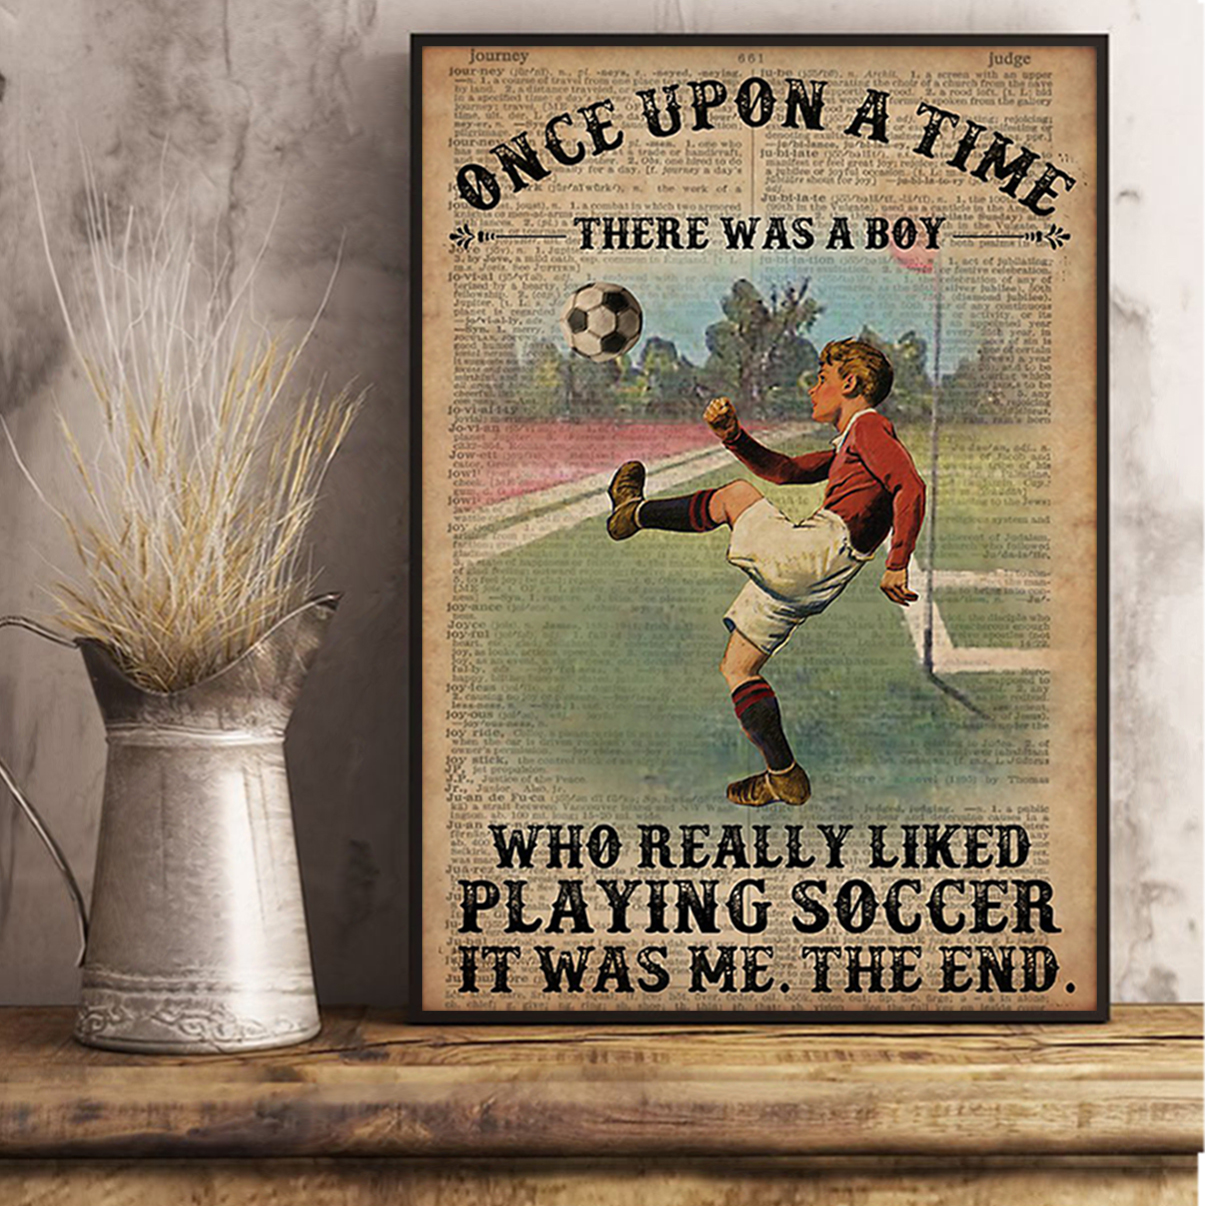 Once upon a time there was a boy who really liked playing soccer poster A2